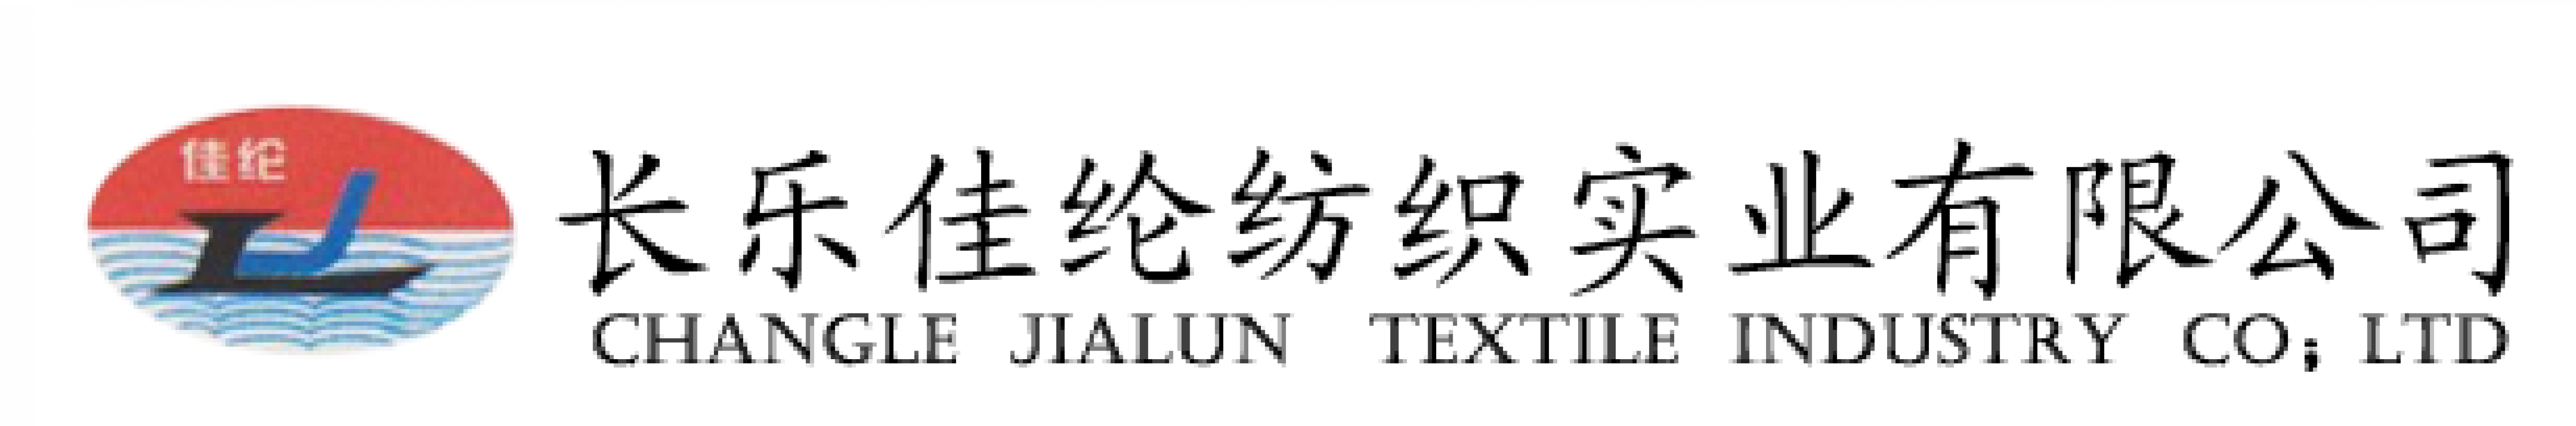 CHANGLE JIALUN TEXTILE INDUSTRY CO., LTD